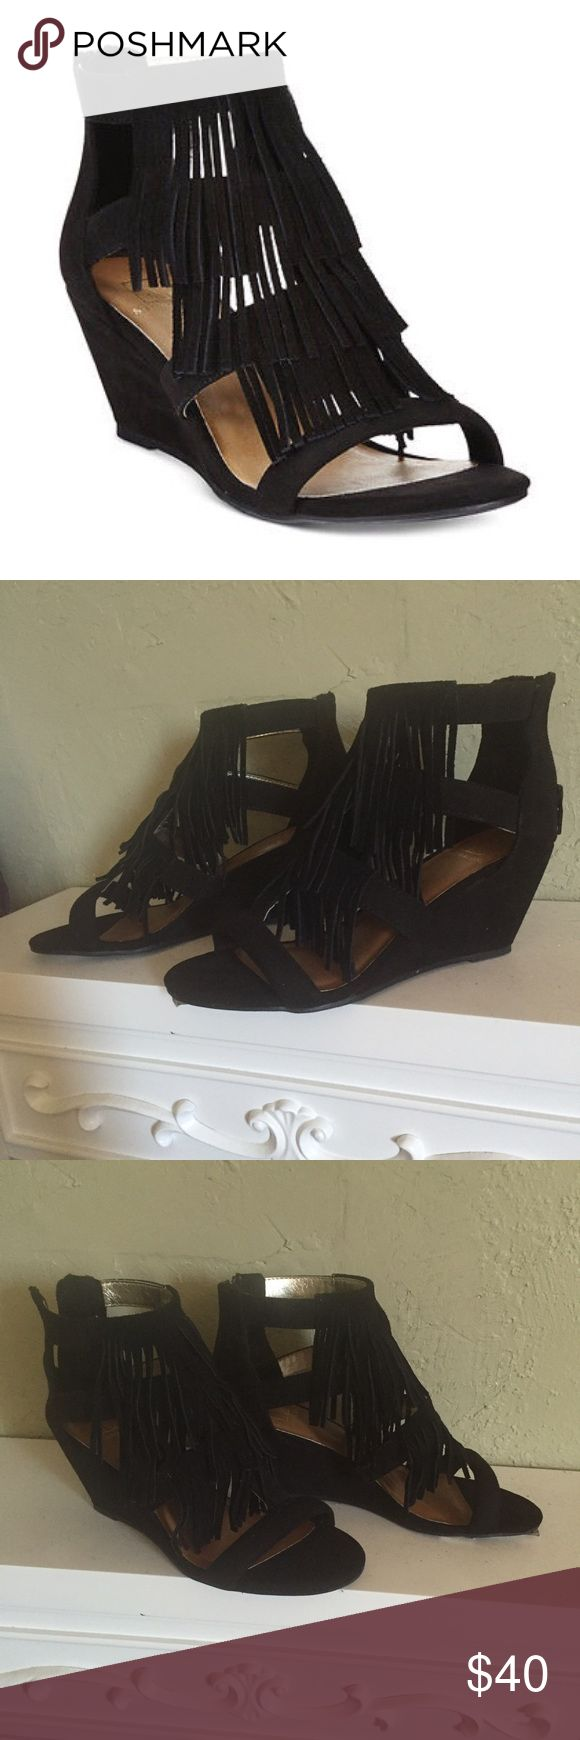 Material Girl Black Fringe Low Wedges Size 5 Wedge Awesome low wedge heel Fringe shoes By Madonna's Material Girl from Macy's. New in box. Only tried on. I'm usually a 5.5-6, these fit but are slightly snug. True to size 5. Flawless! Wish I could keep! Material Girl Shoes Wedges